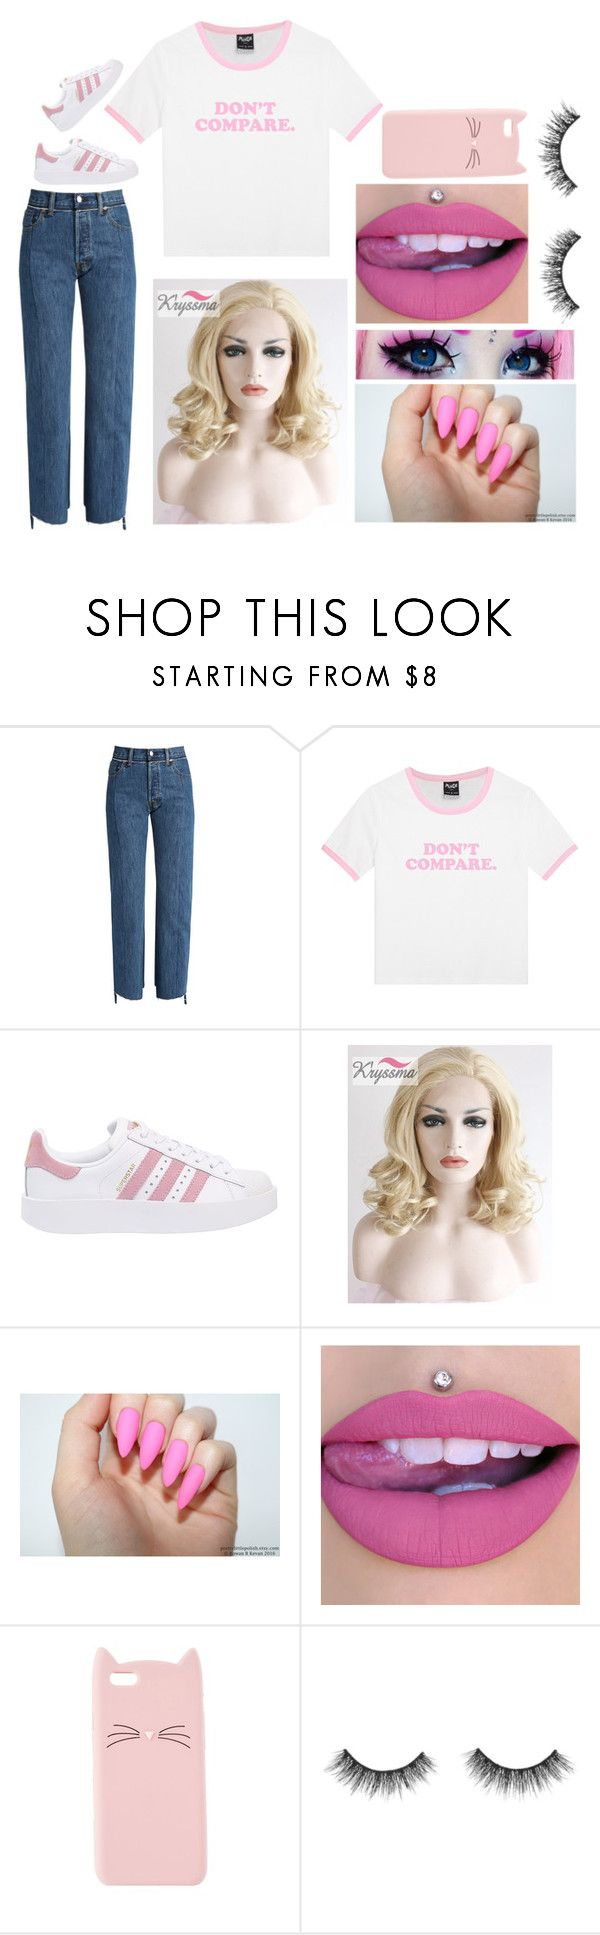 """Bailey: August 25, 2017"" by disneyfreaks39 ❤ liked on Polyvore featuring Vetements, adidas Originals and Charlotte Russe"